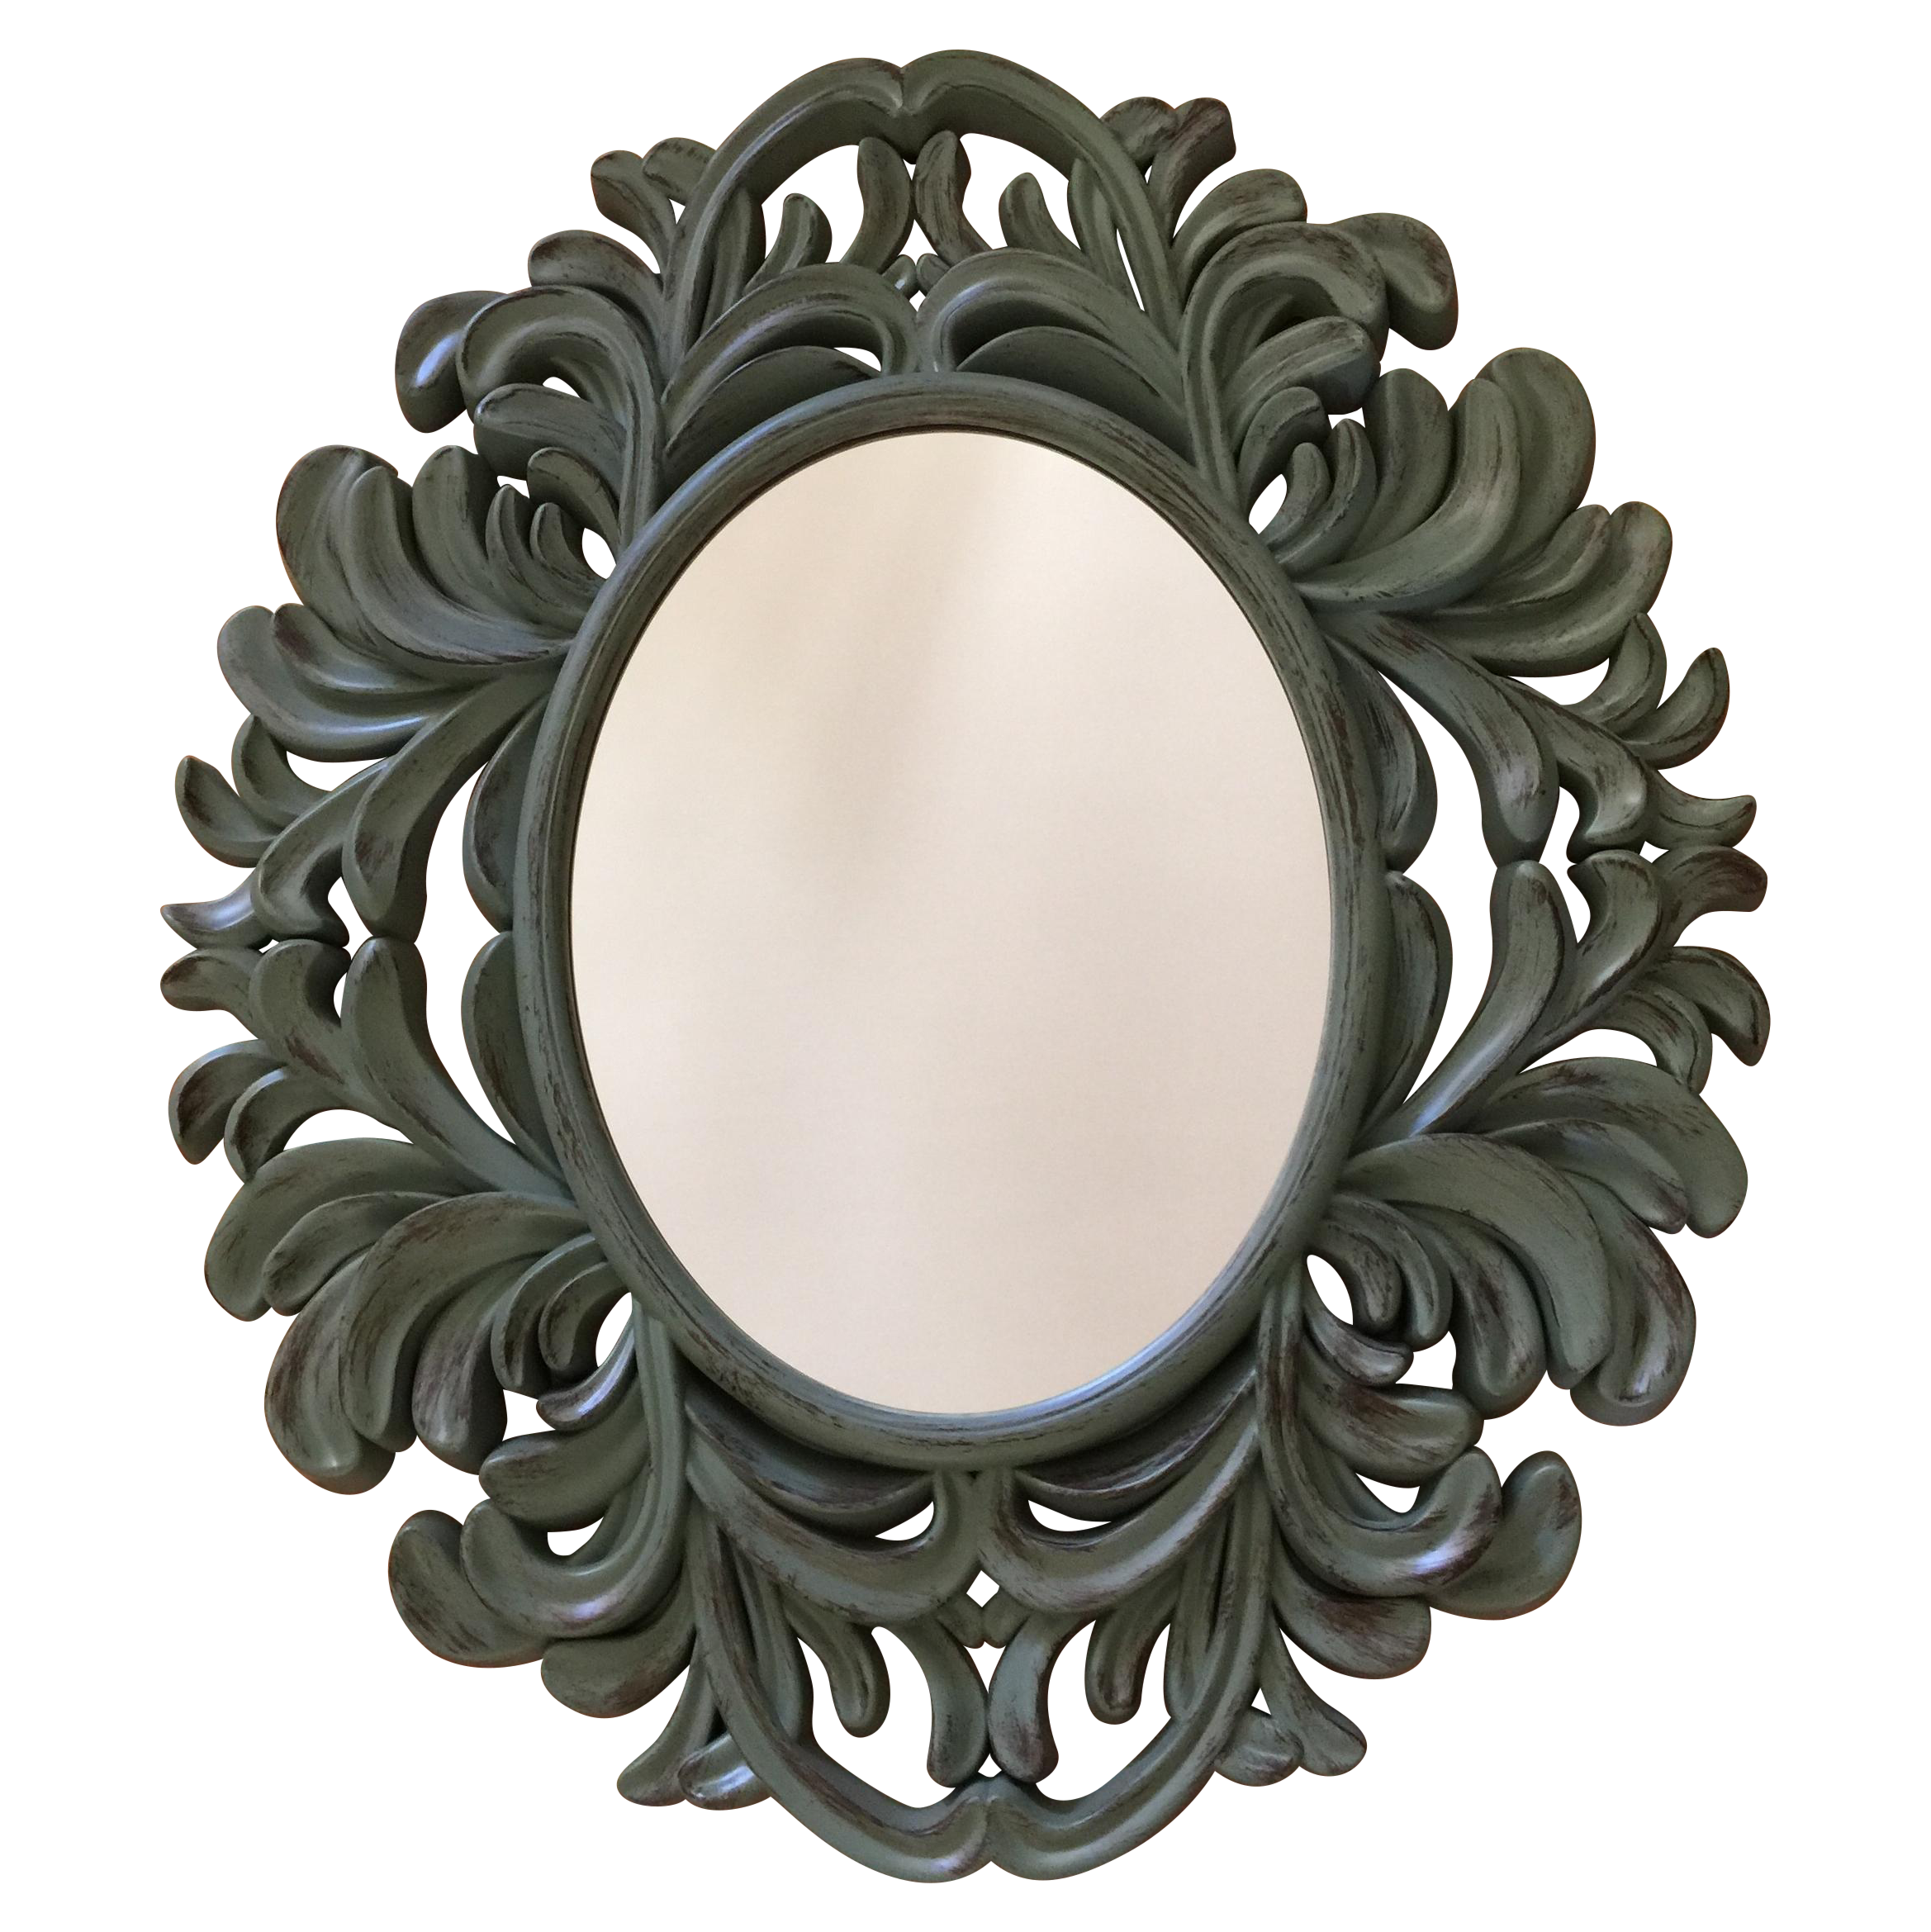 Modern rococo style resin mirror chairish for Baroque resin mirror